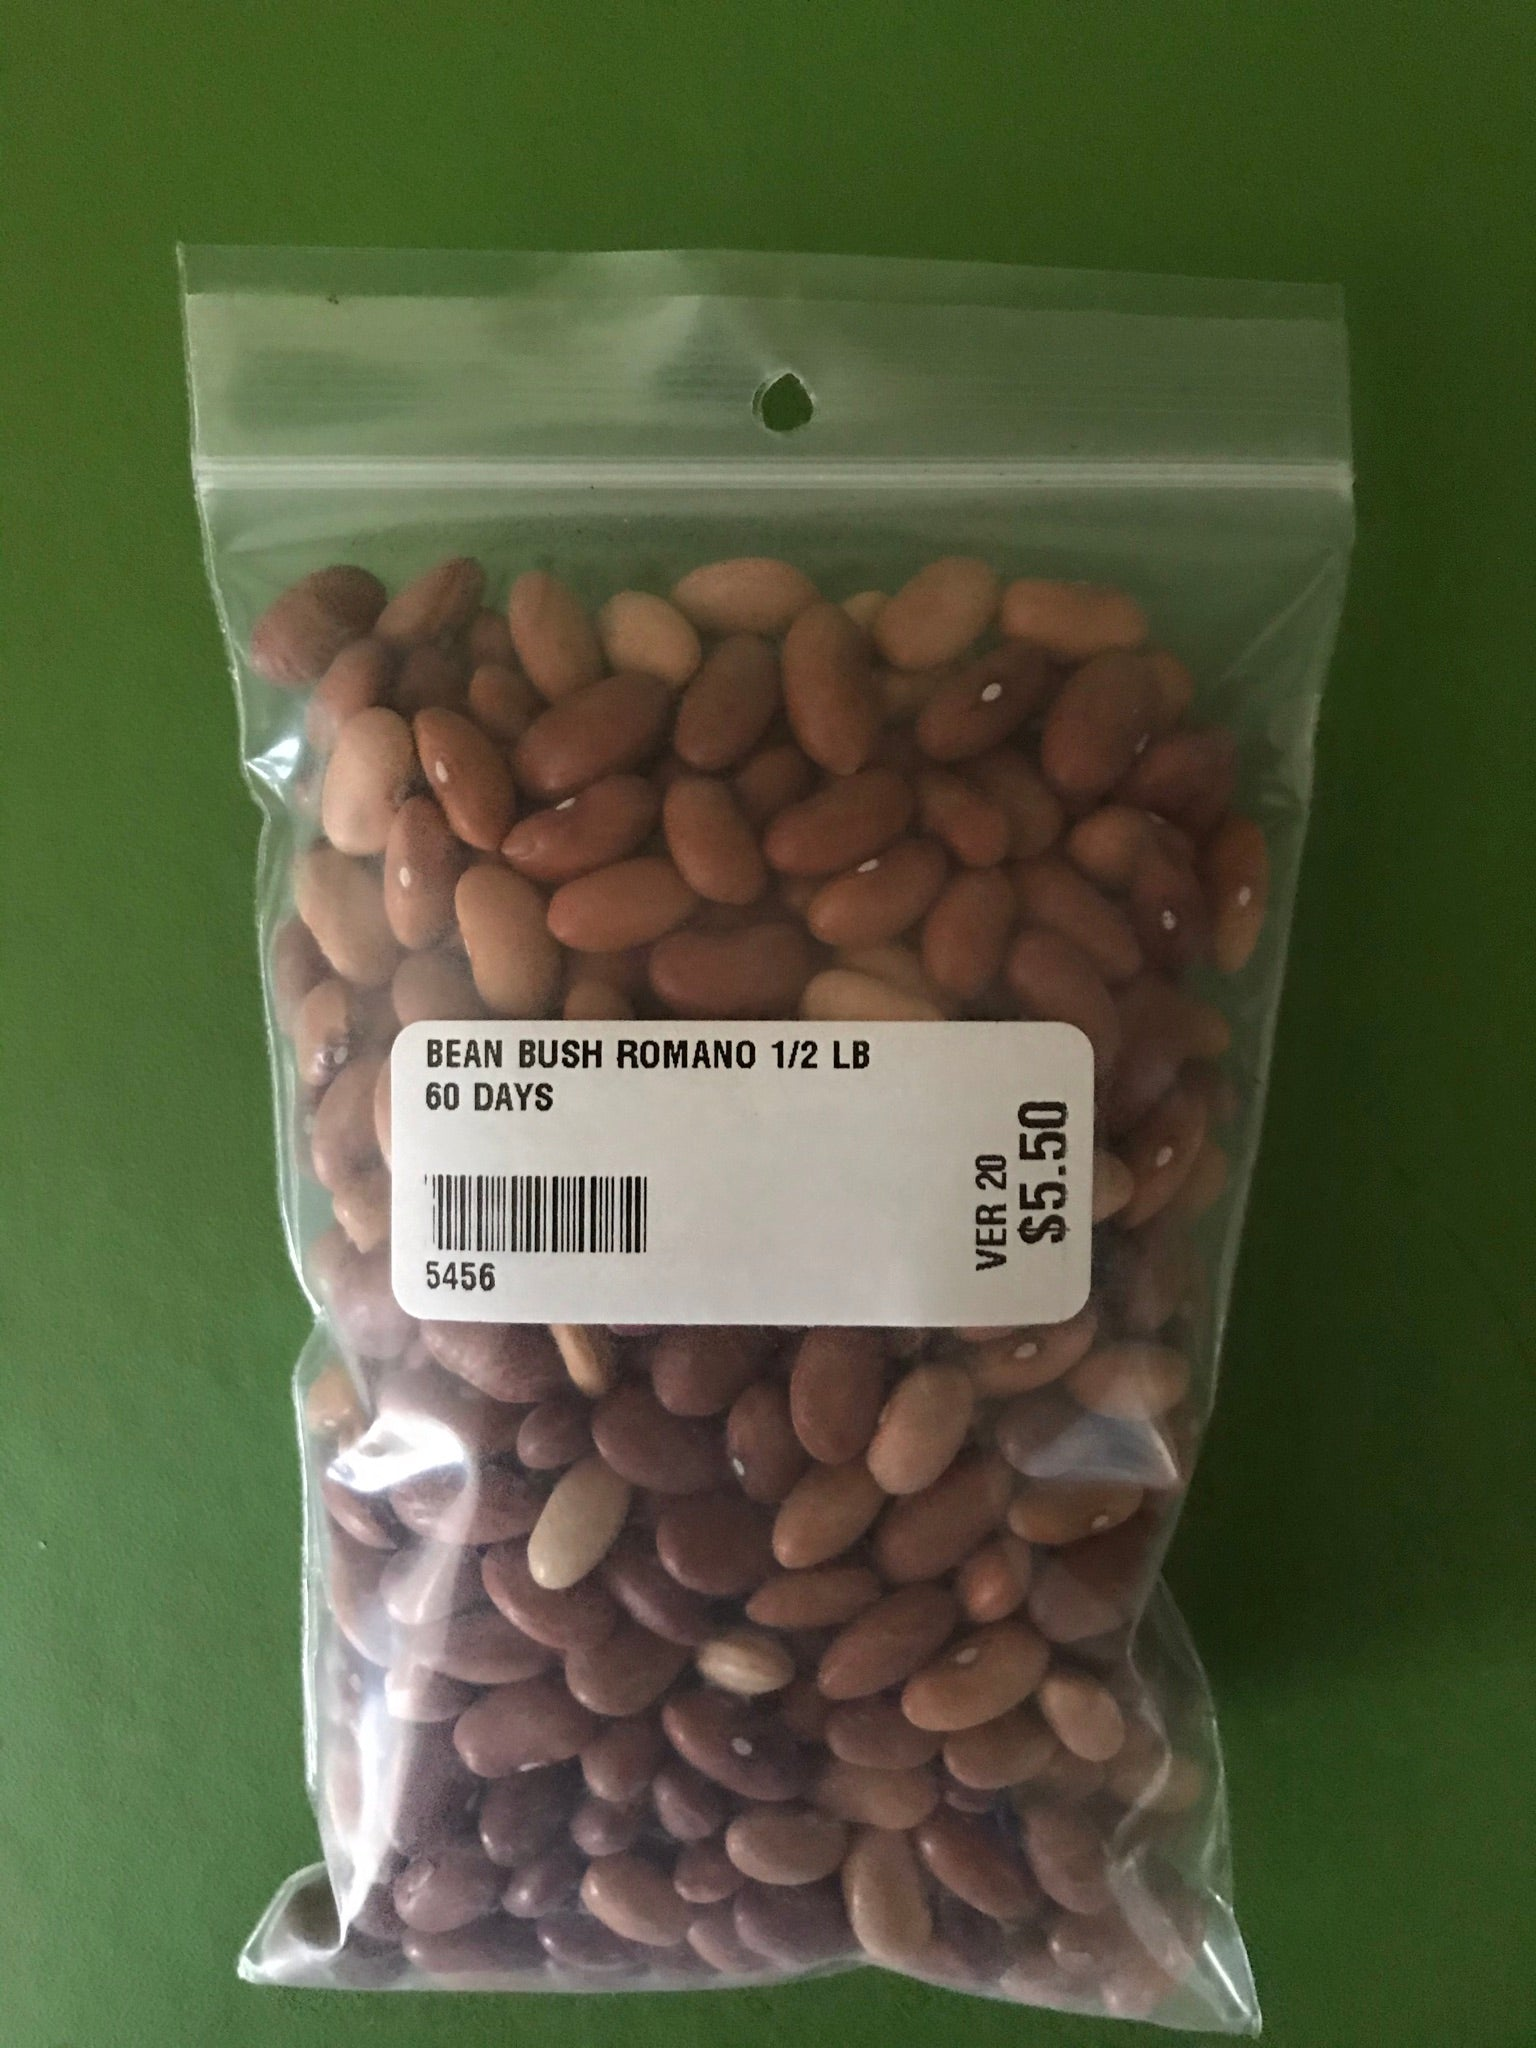 Romano No. 14 Bush Bean Seeds (60 Days) - 1/2 lb - Bulk